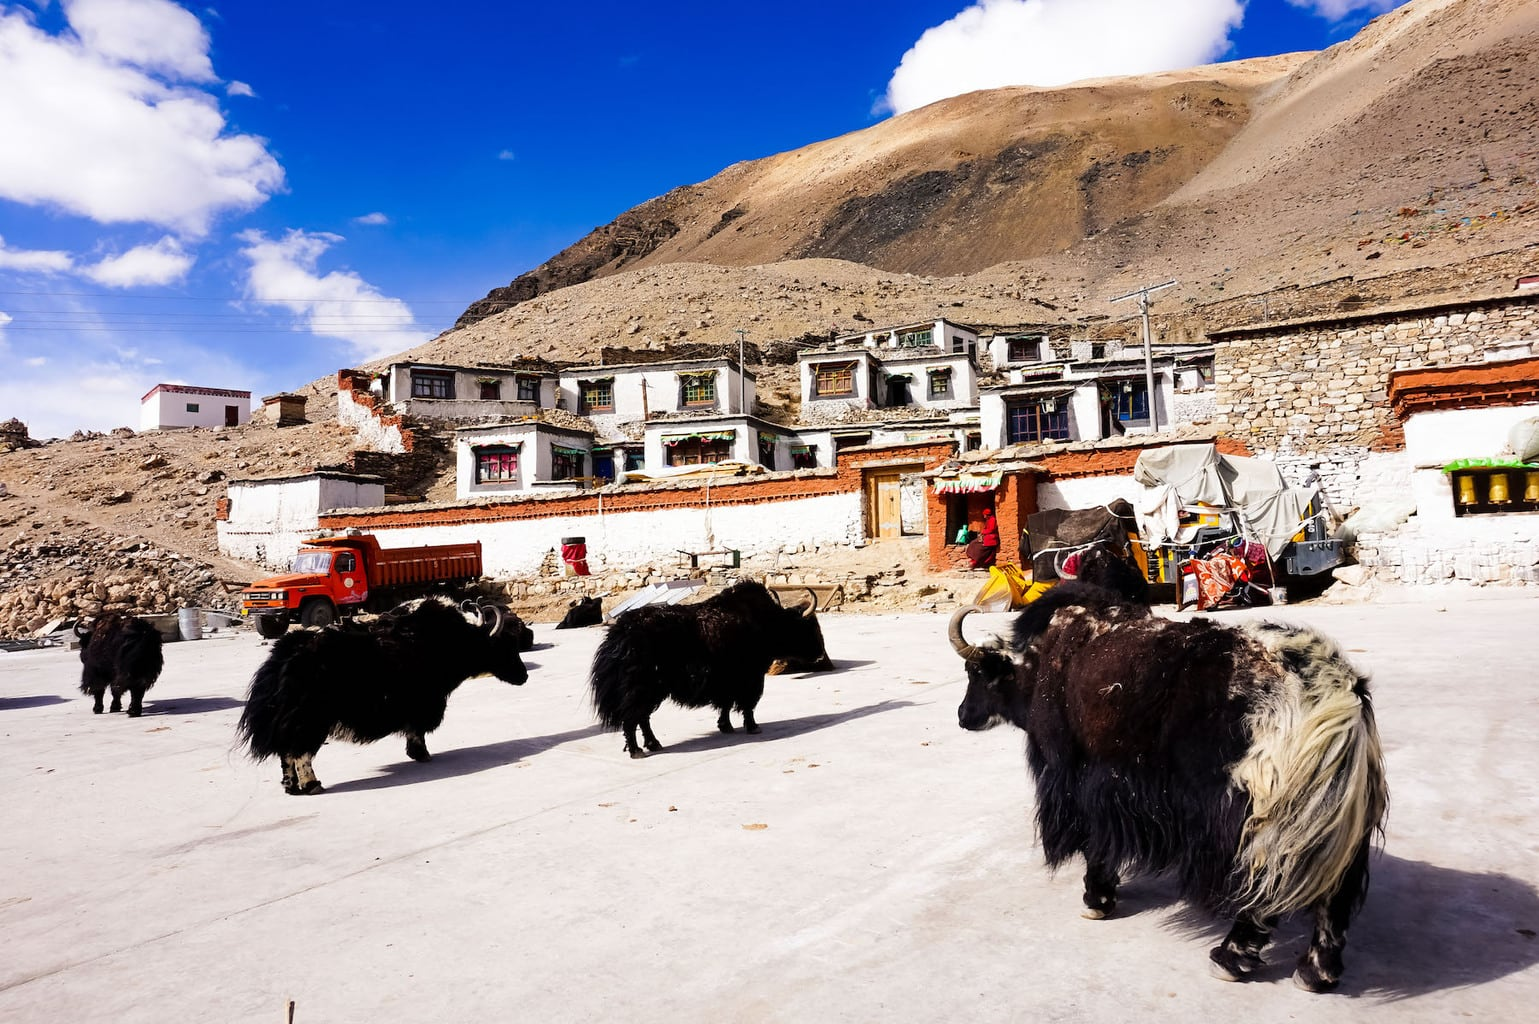 Yaks in high altitudes